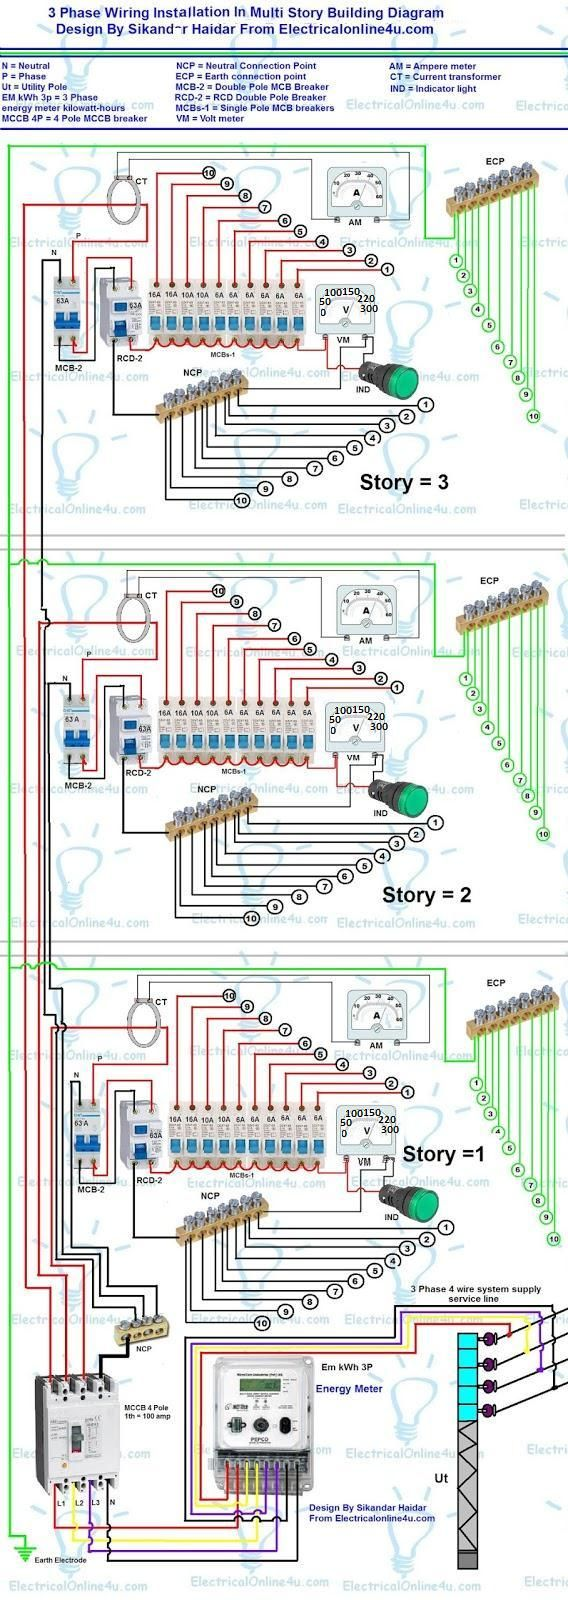 3 phase wiring installation diagram Electrical